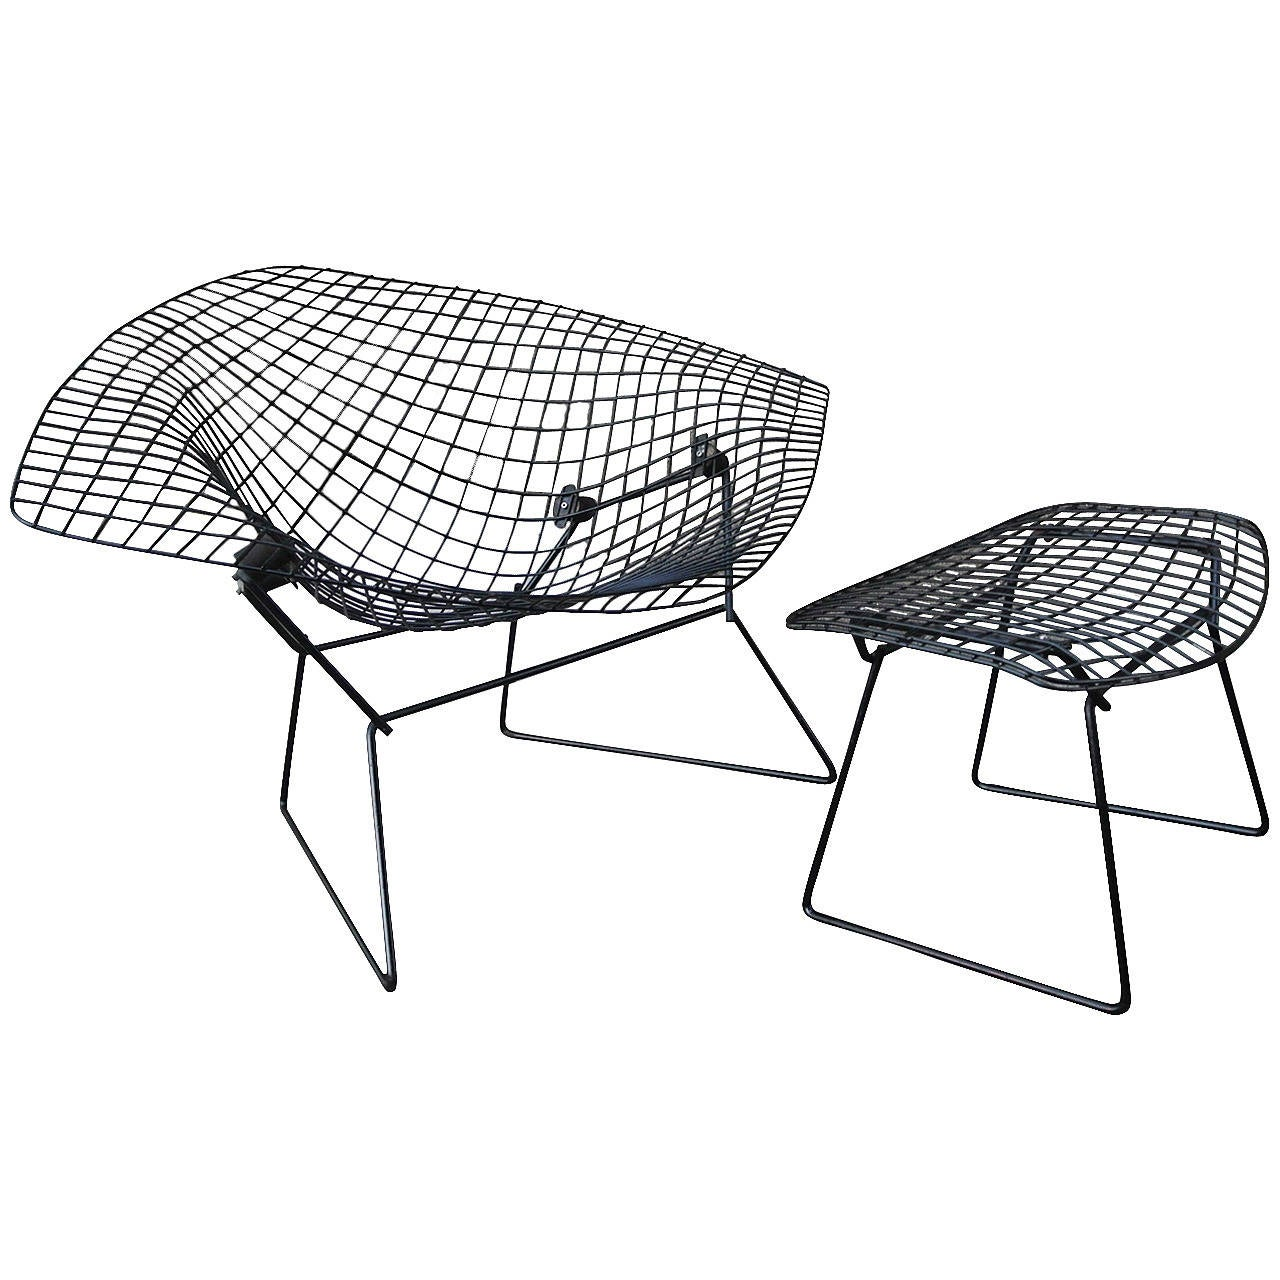 Bertoia diamond chair black - Diamond Chair W Ottoman By Harry Bertoia For Knoll 1